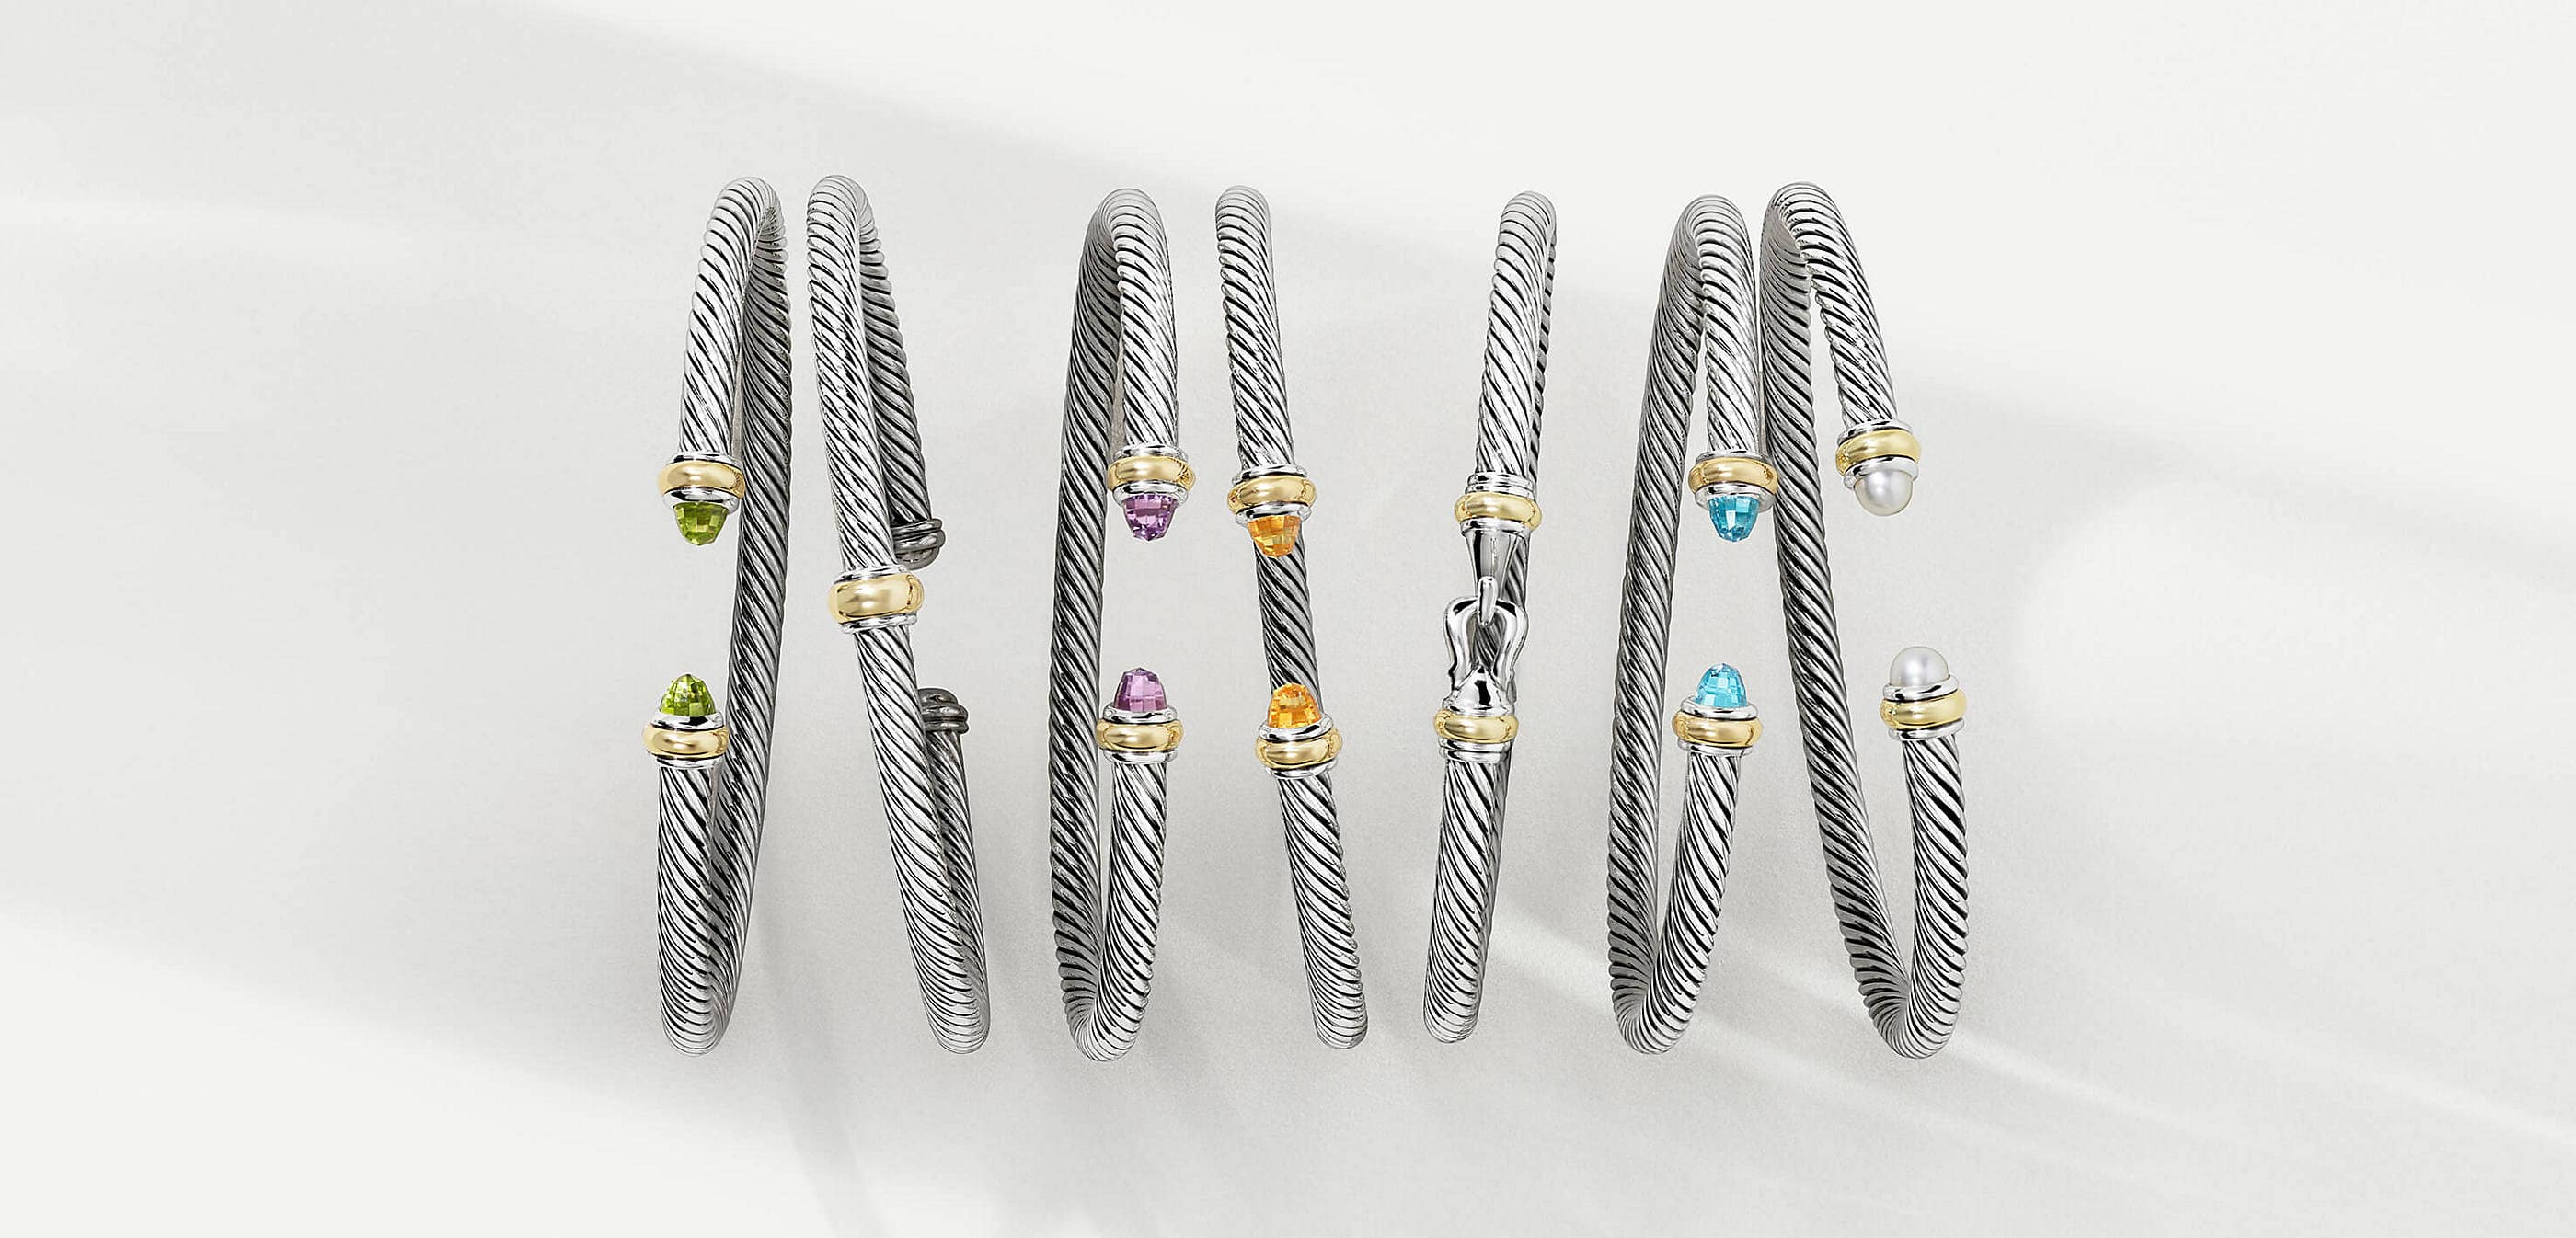 A color photo shows an overhead shot of a horizontal row of seven David Yurman Cable bracelets atop a white background with soft shadows. The jewelry is crafted from sterling silver with 18K yellow gold accents near the end caps. Five bracelets feature gemstones such as cultured pearls, peridot, amethyst, citrine or blue topaz.